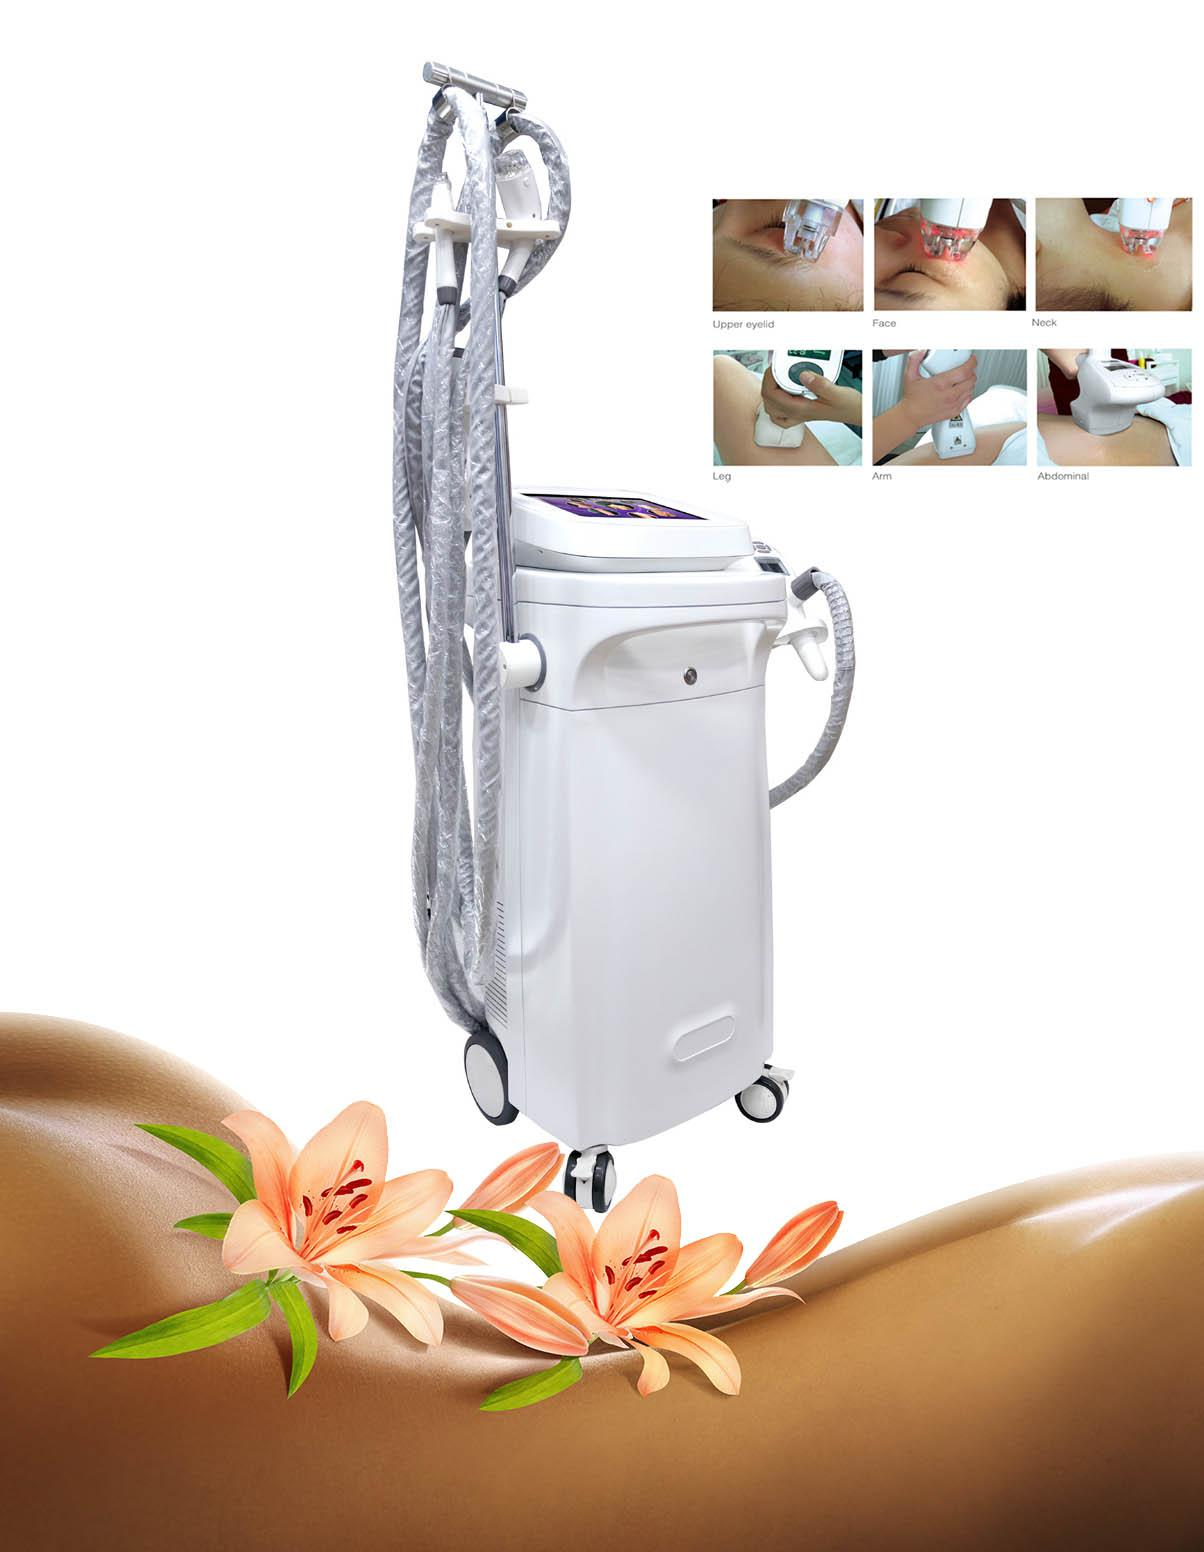 Mechanical, laser, vacuum cleaning of the face: reviews. Apparatus for ultrasonic face cleaning 36